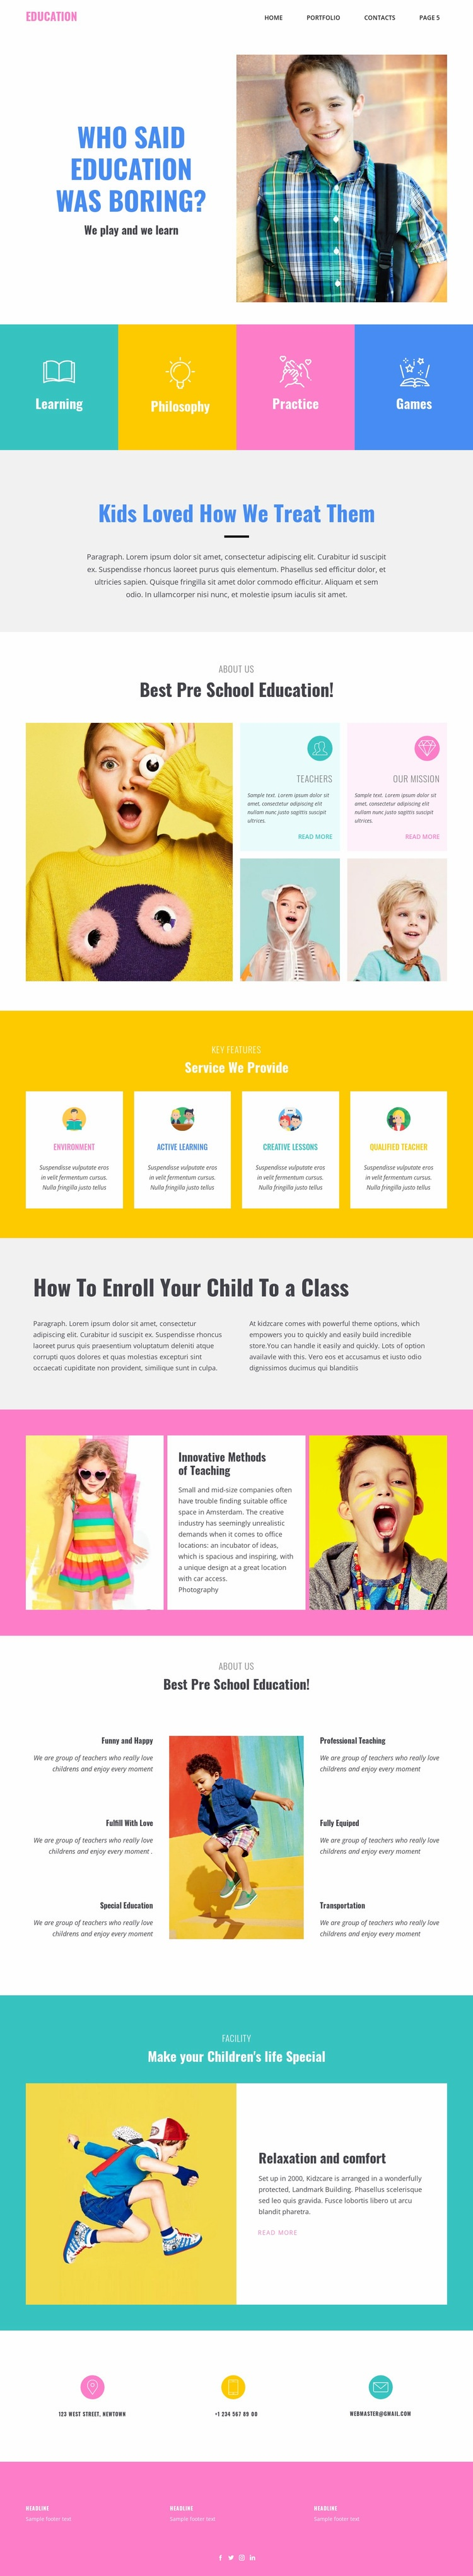 Fun of learning in school Html Code Example